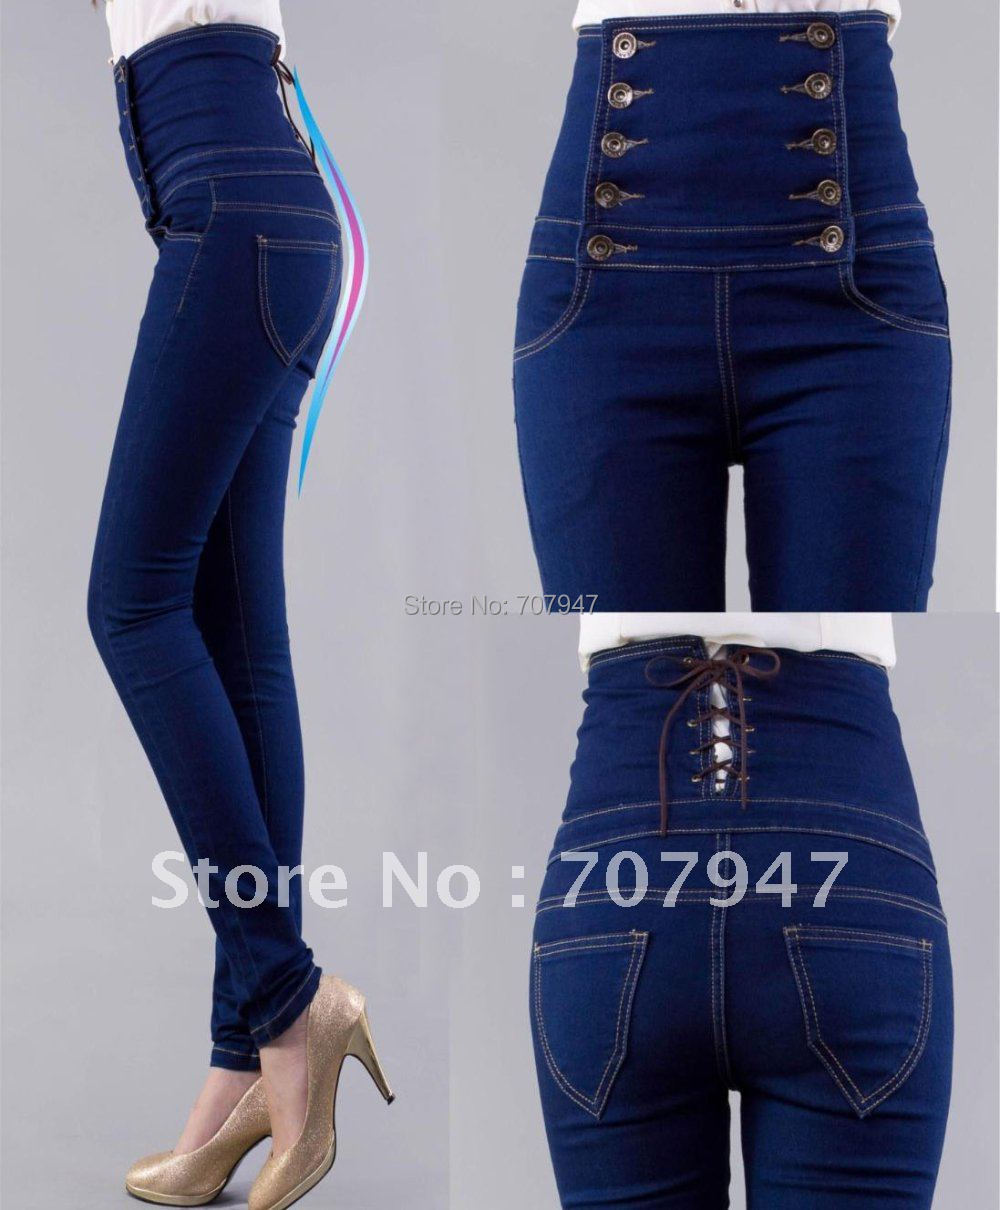 Places To Buy High Waisted Jeans - Jeans Am